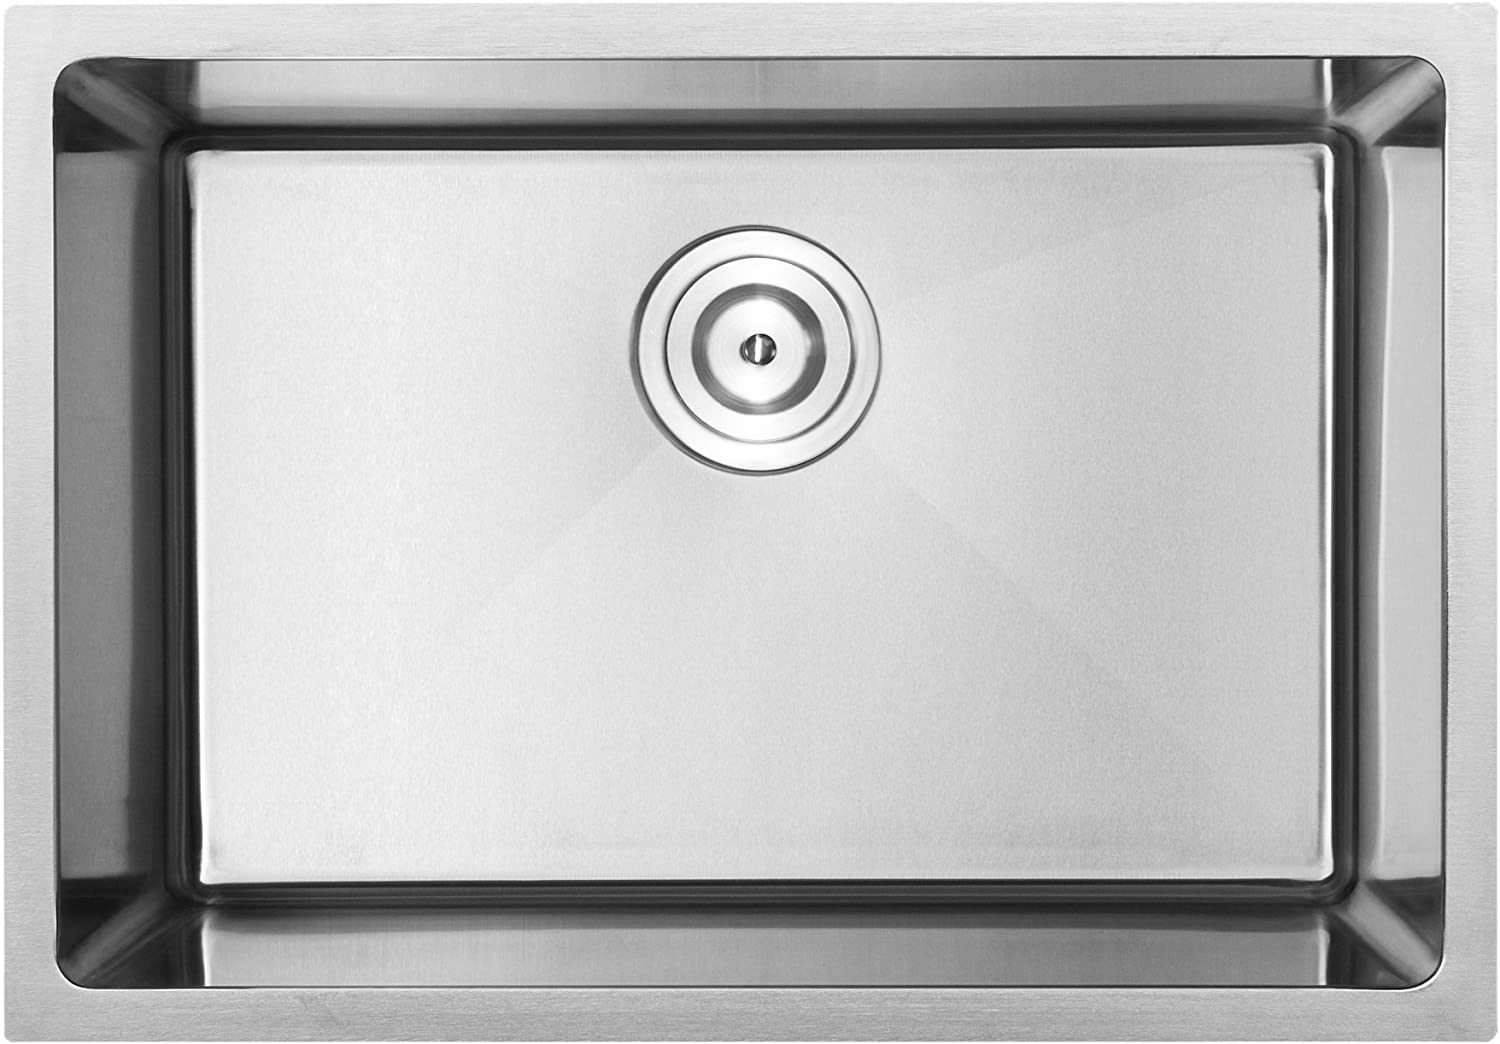 24 PLZ-23-TBASK Undermount 18 Gauge Stainless Steel Square Kitchen Sink with Tight Radius Corners